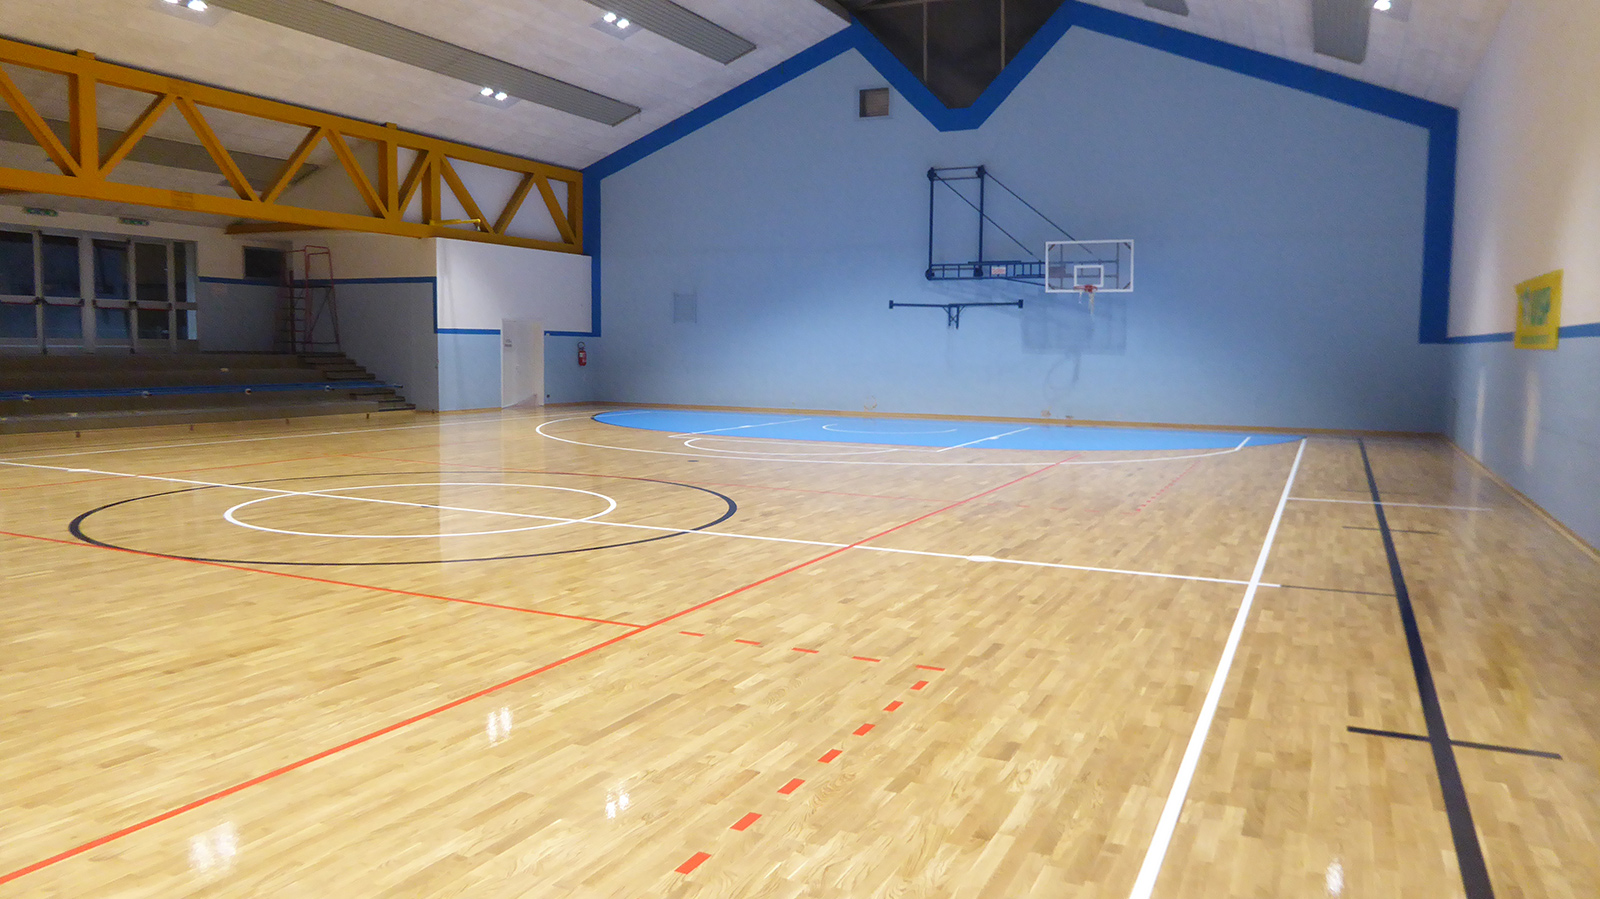 Work finished: restoration of the flooring for the Ceneselli sports clubs